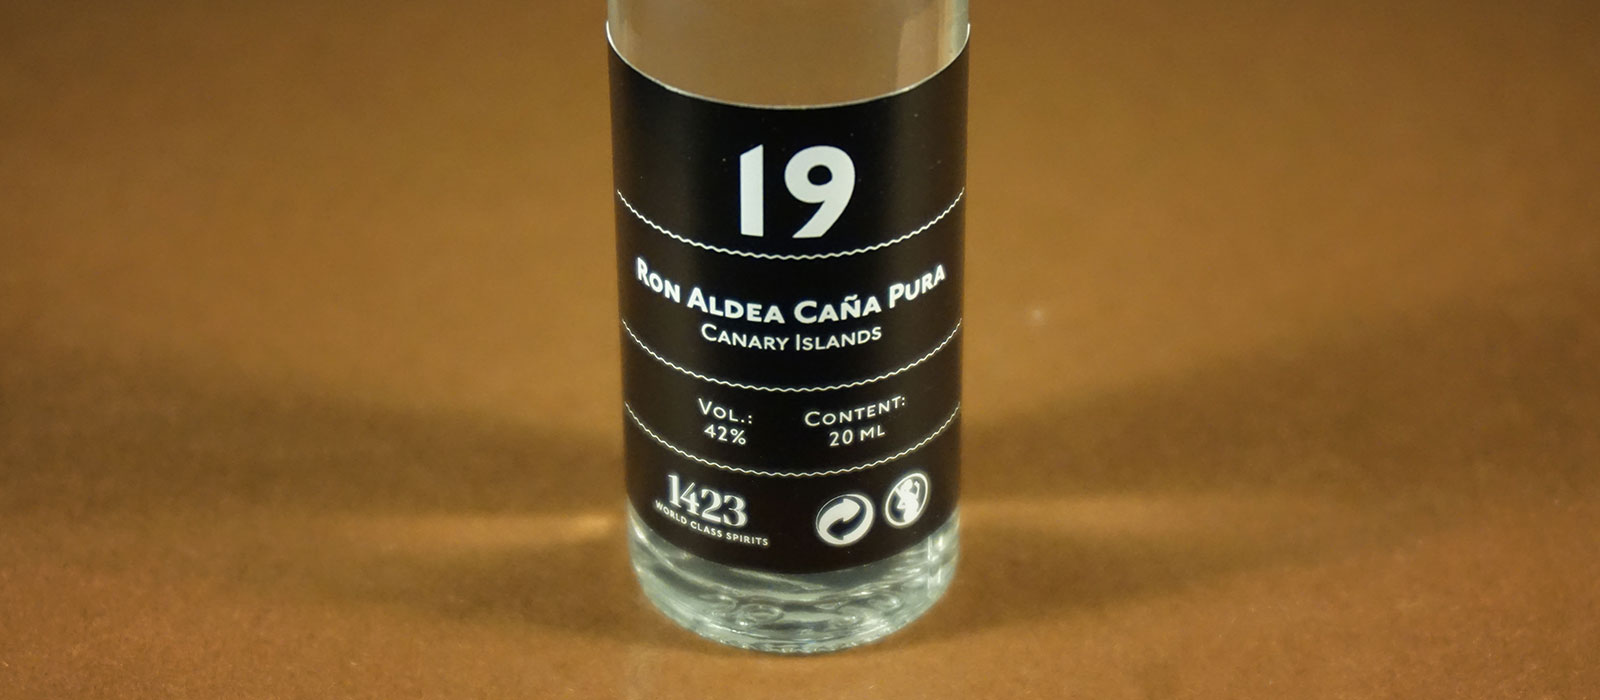 24 Days of Rum 2017: Dag 19 – Ron Aldea Cana Pura